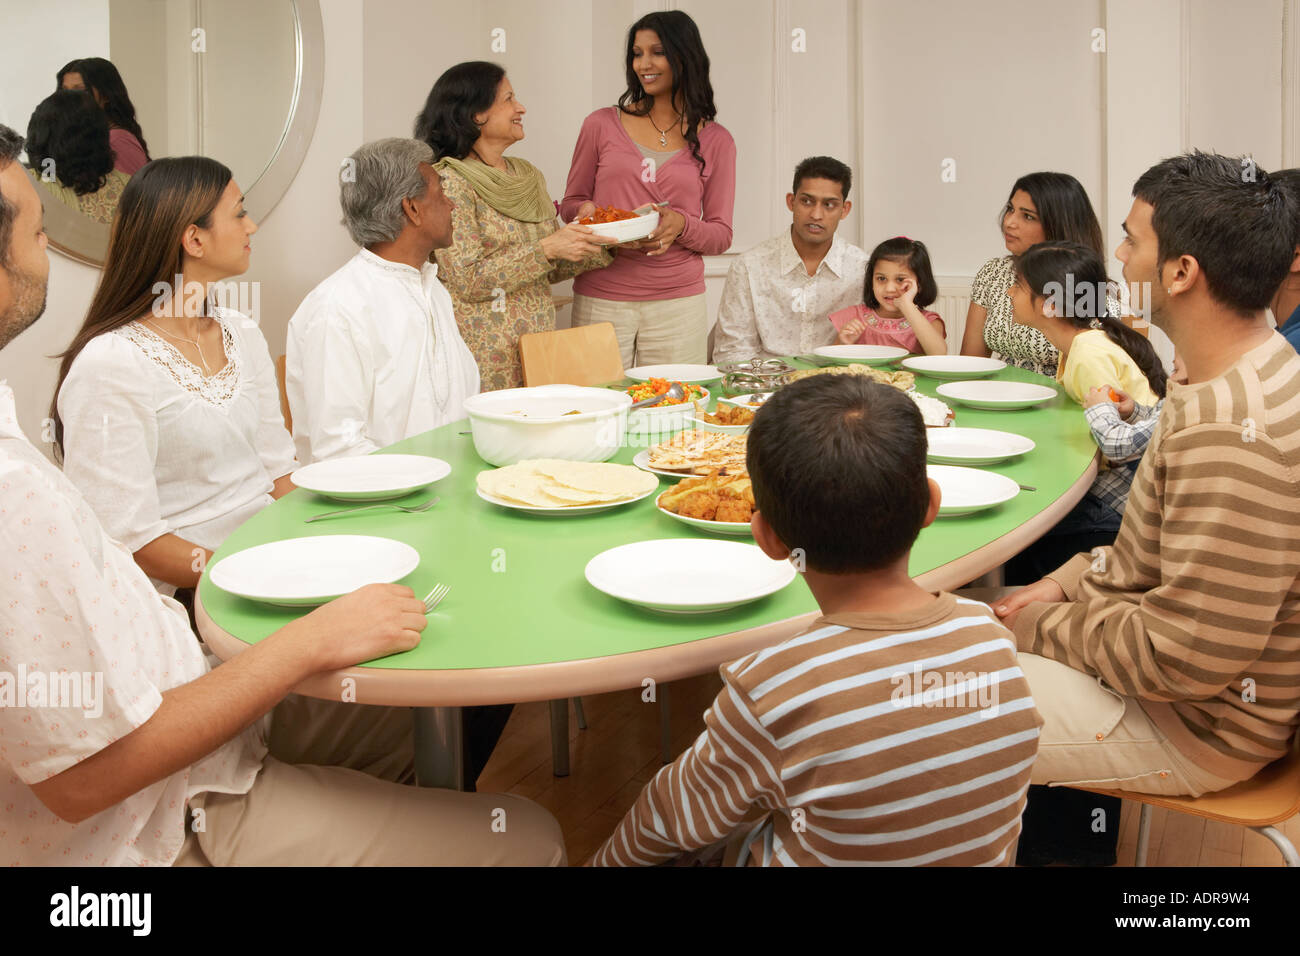 Large family at dining table - Stock Image